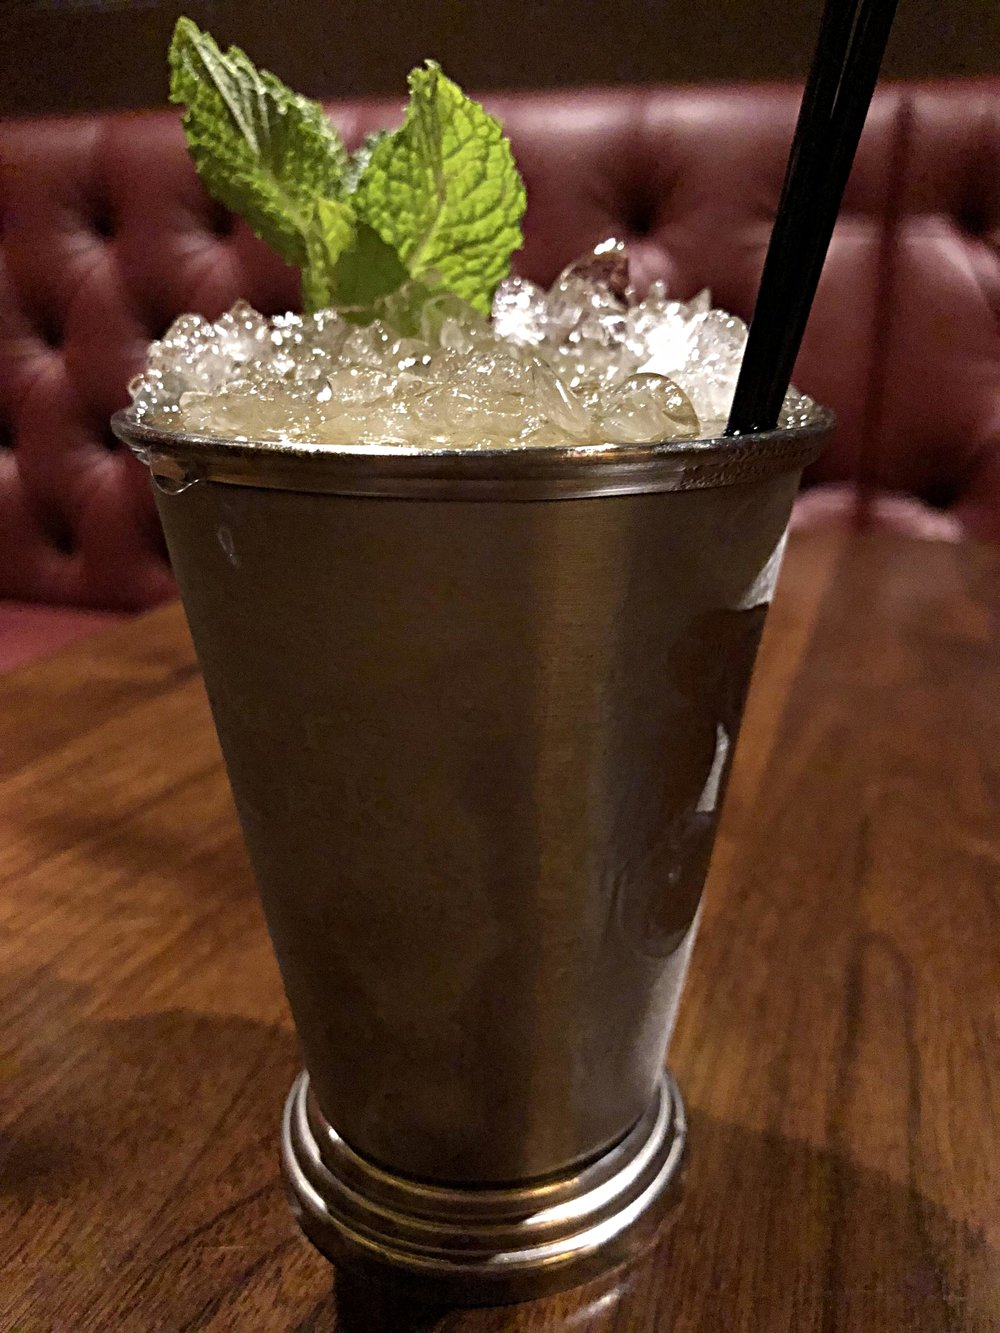 Mint Julep - Maker's Mark bourbon, simple syrup, mint, served over crushed ice